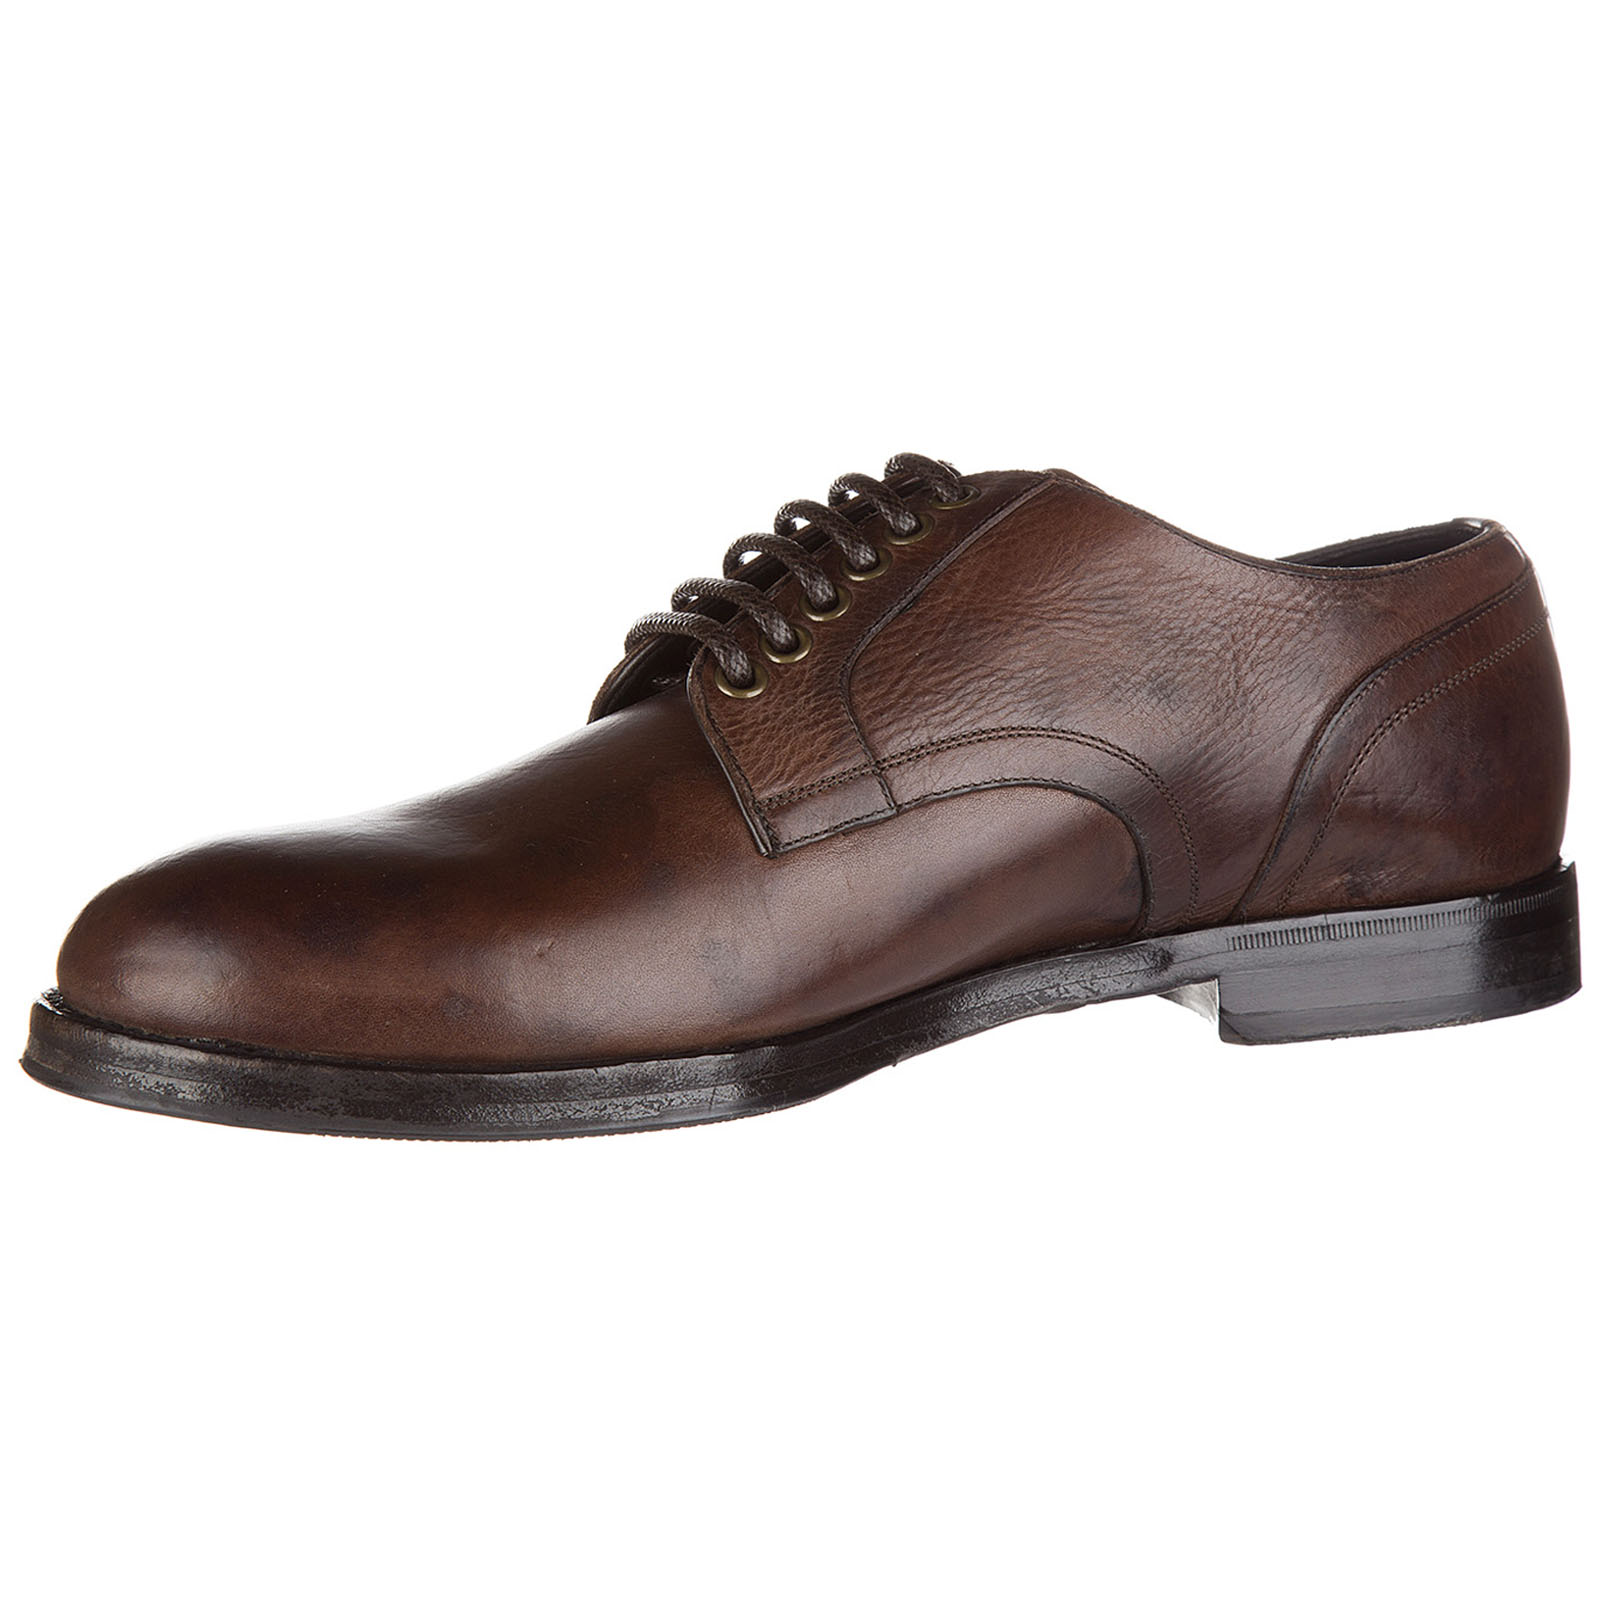 Men's classic leather lace up laced formal shoes derby giorgione stone wash